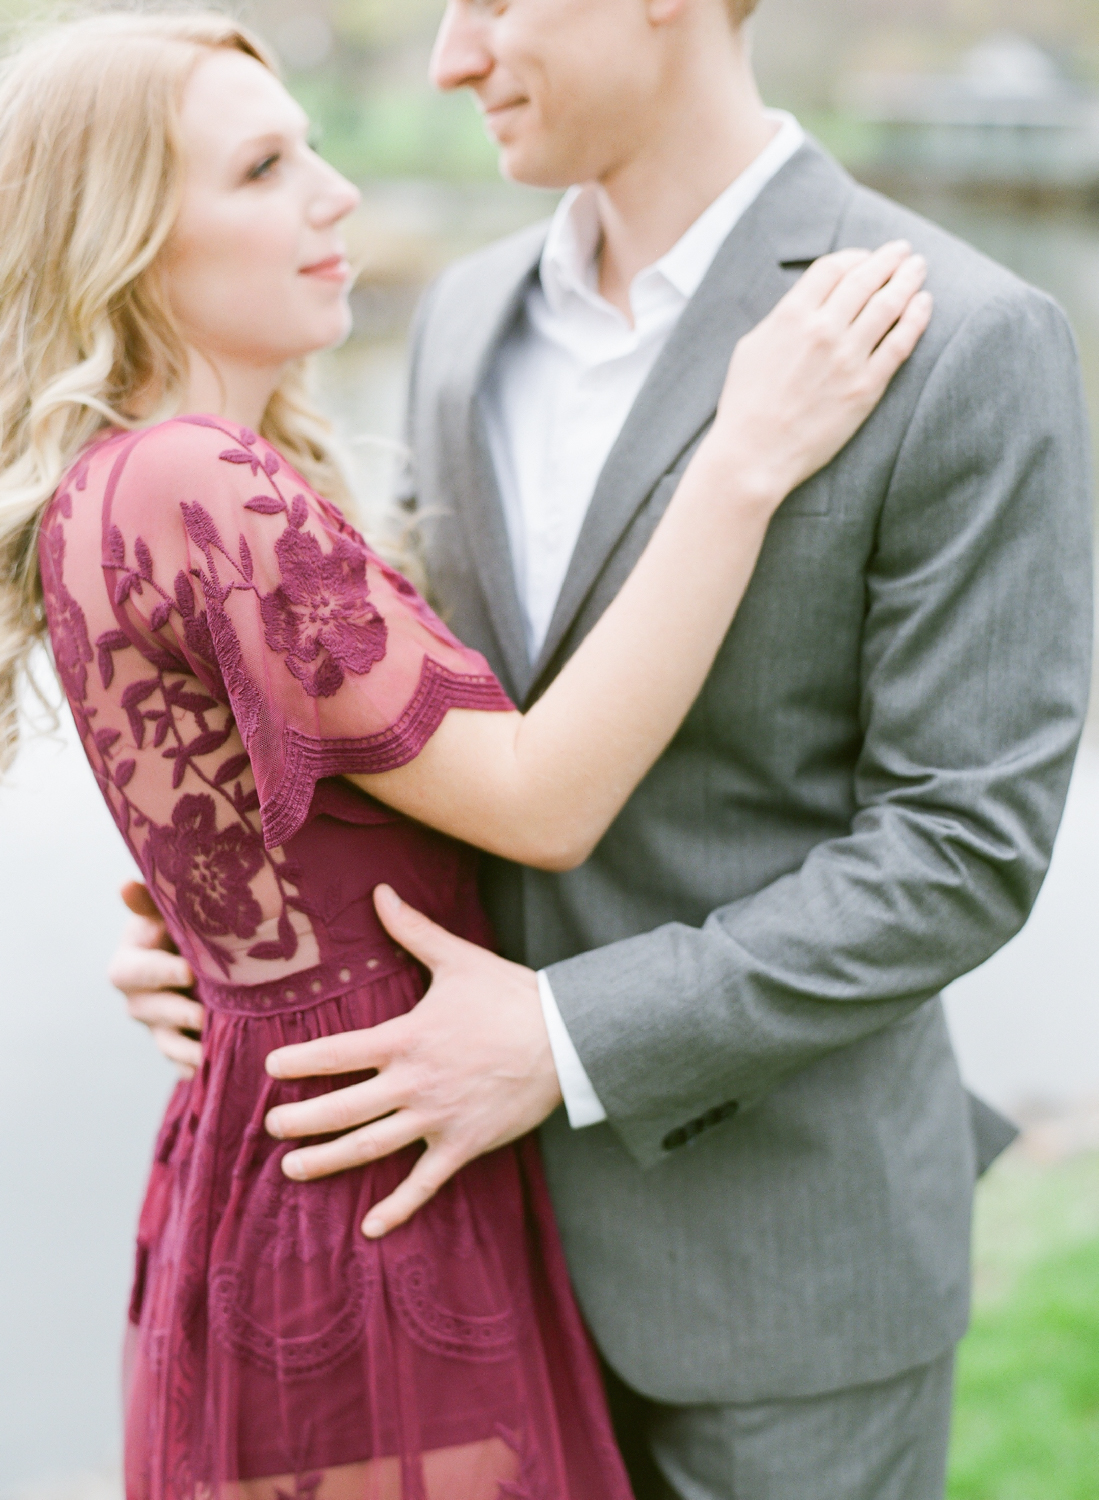 Jacqueline Anne Photography - Amanda and Brent-50.jpg